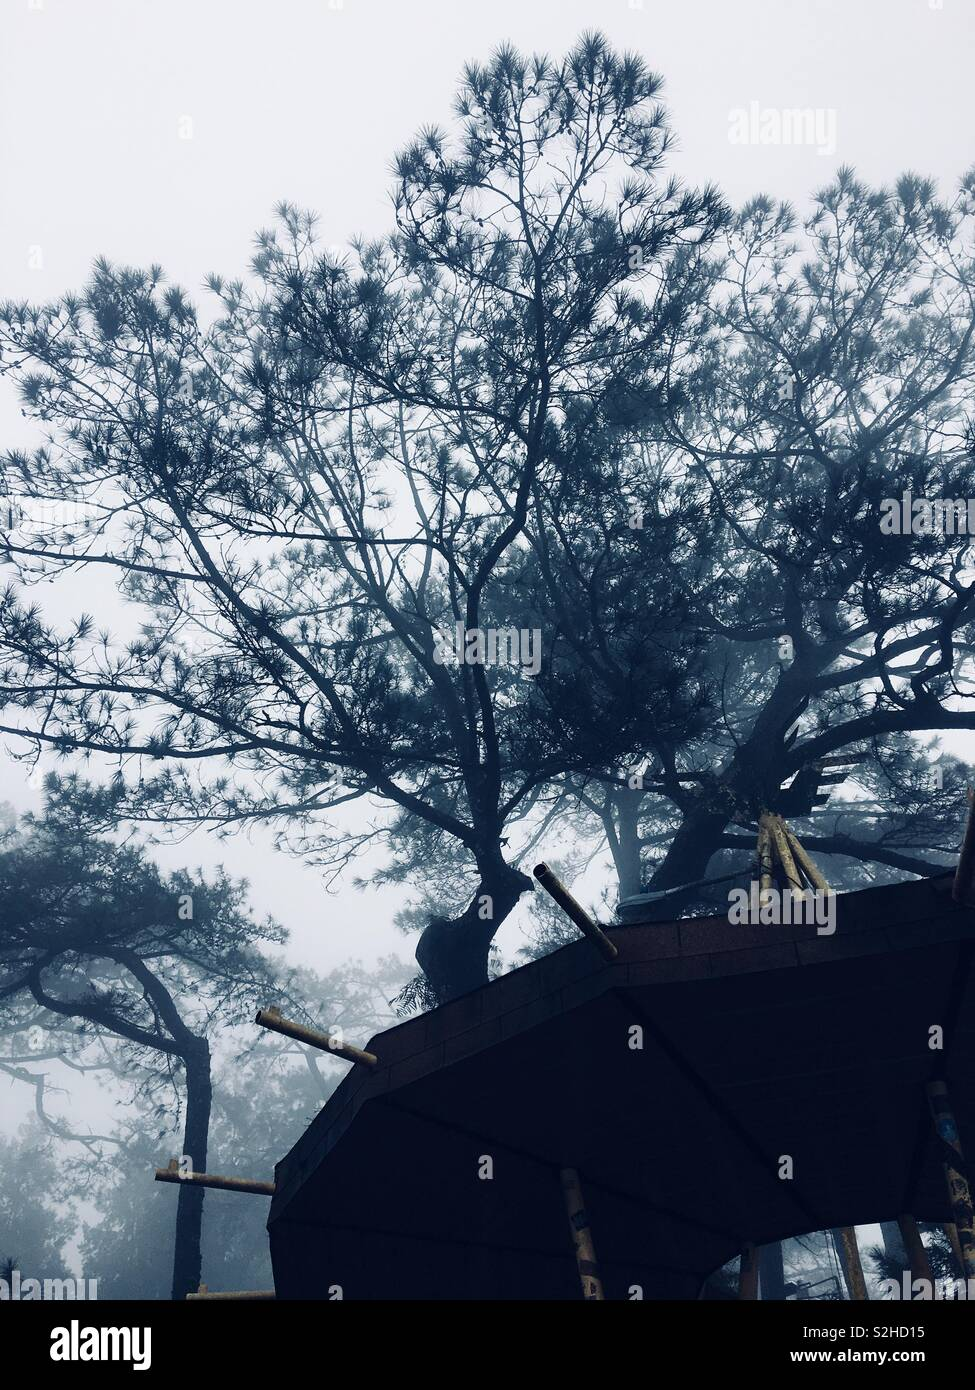 Took on a foggy afternoon in Baguio City, Philippines. - Stock Image